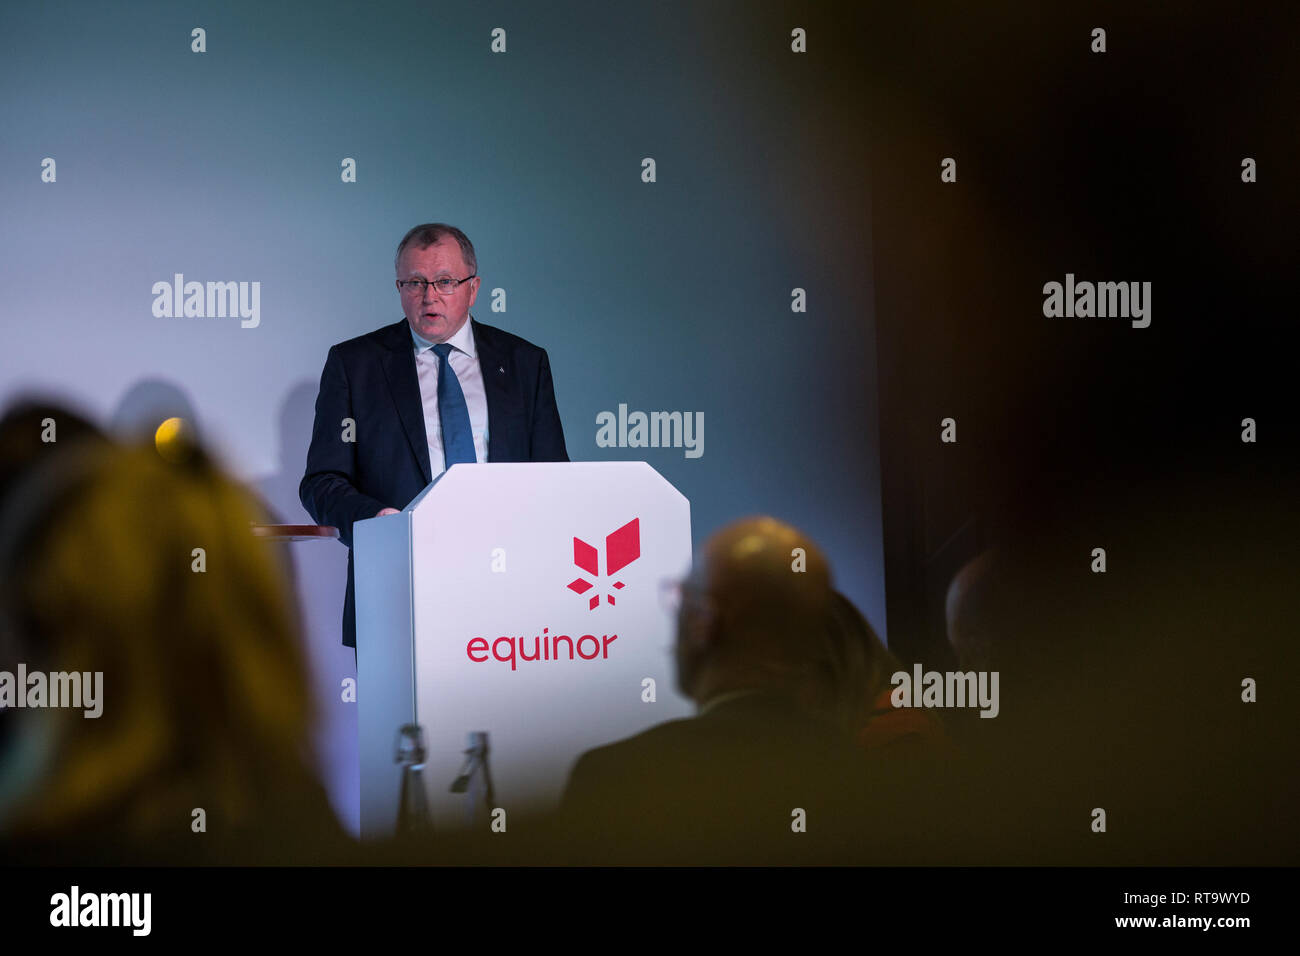 Eldar Sætre. President and Chief Executive Officer (CEO) of Equinor at the Capital markets Day in London, England, UK Stock Photo